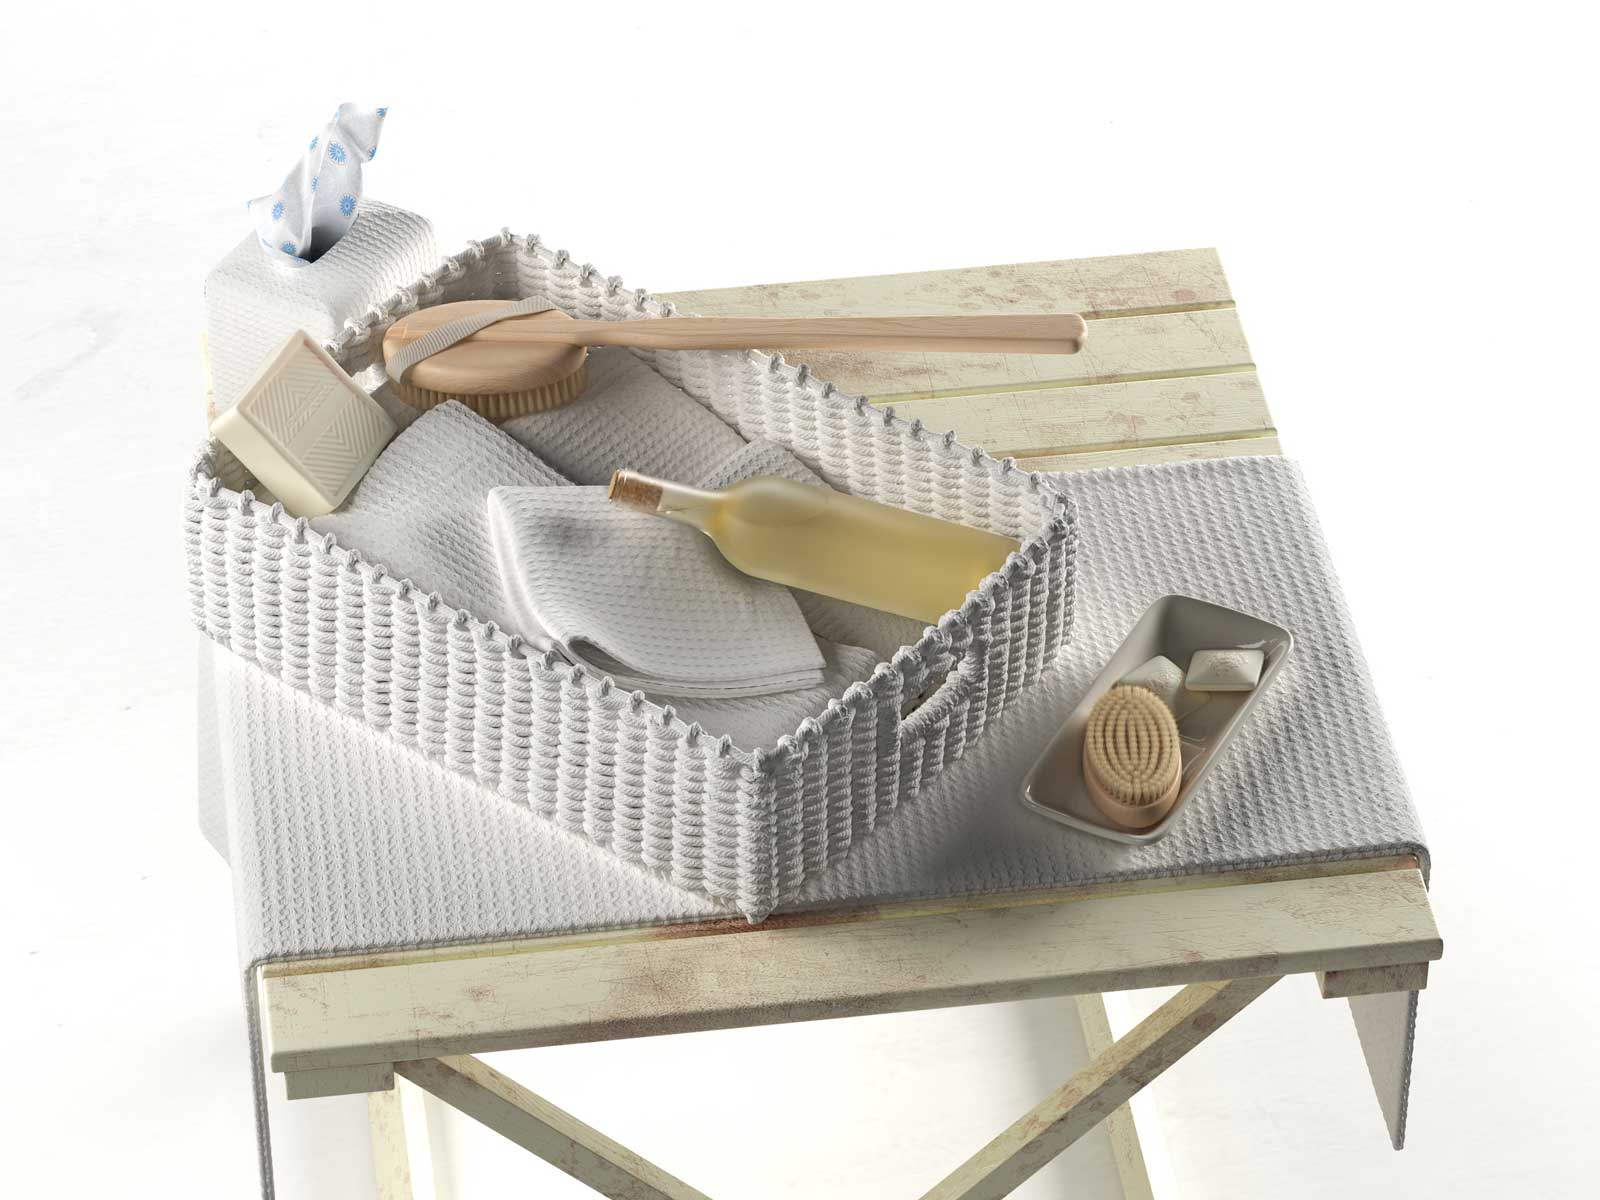 Genial Bathroom Toiletries On Wicker Tray 3d Model